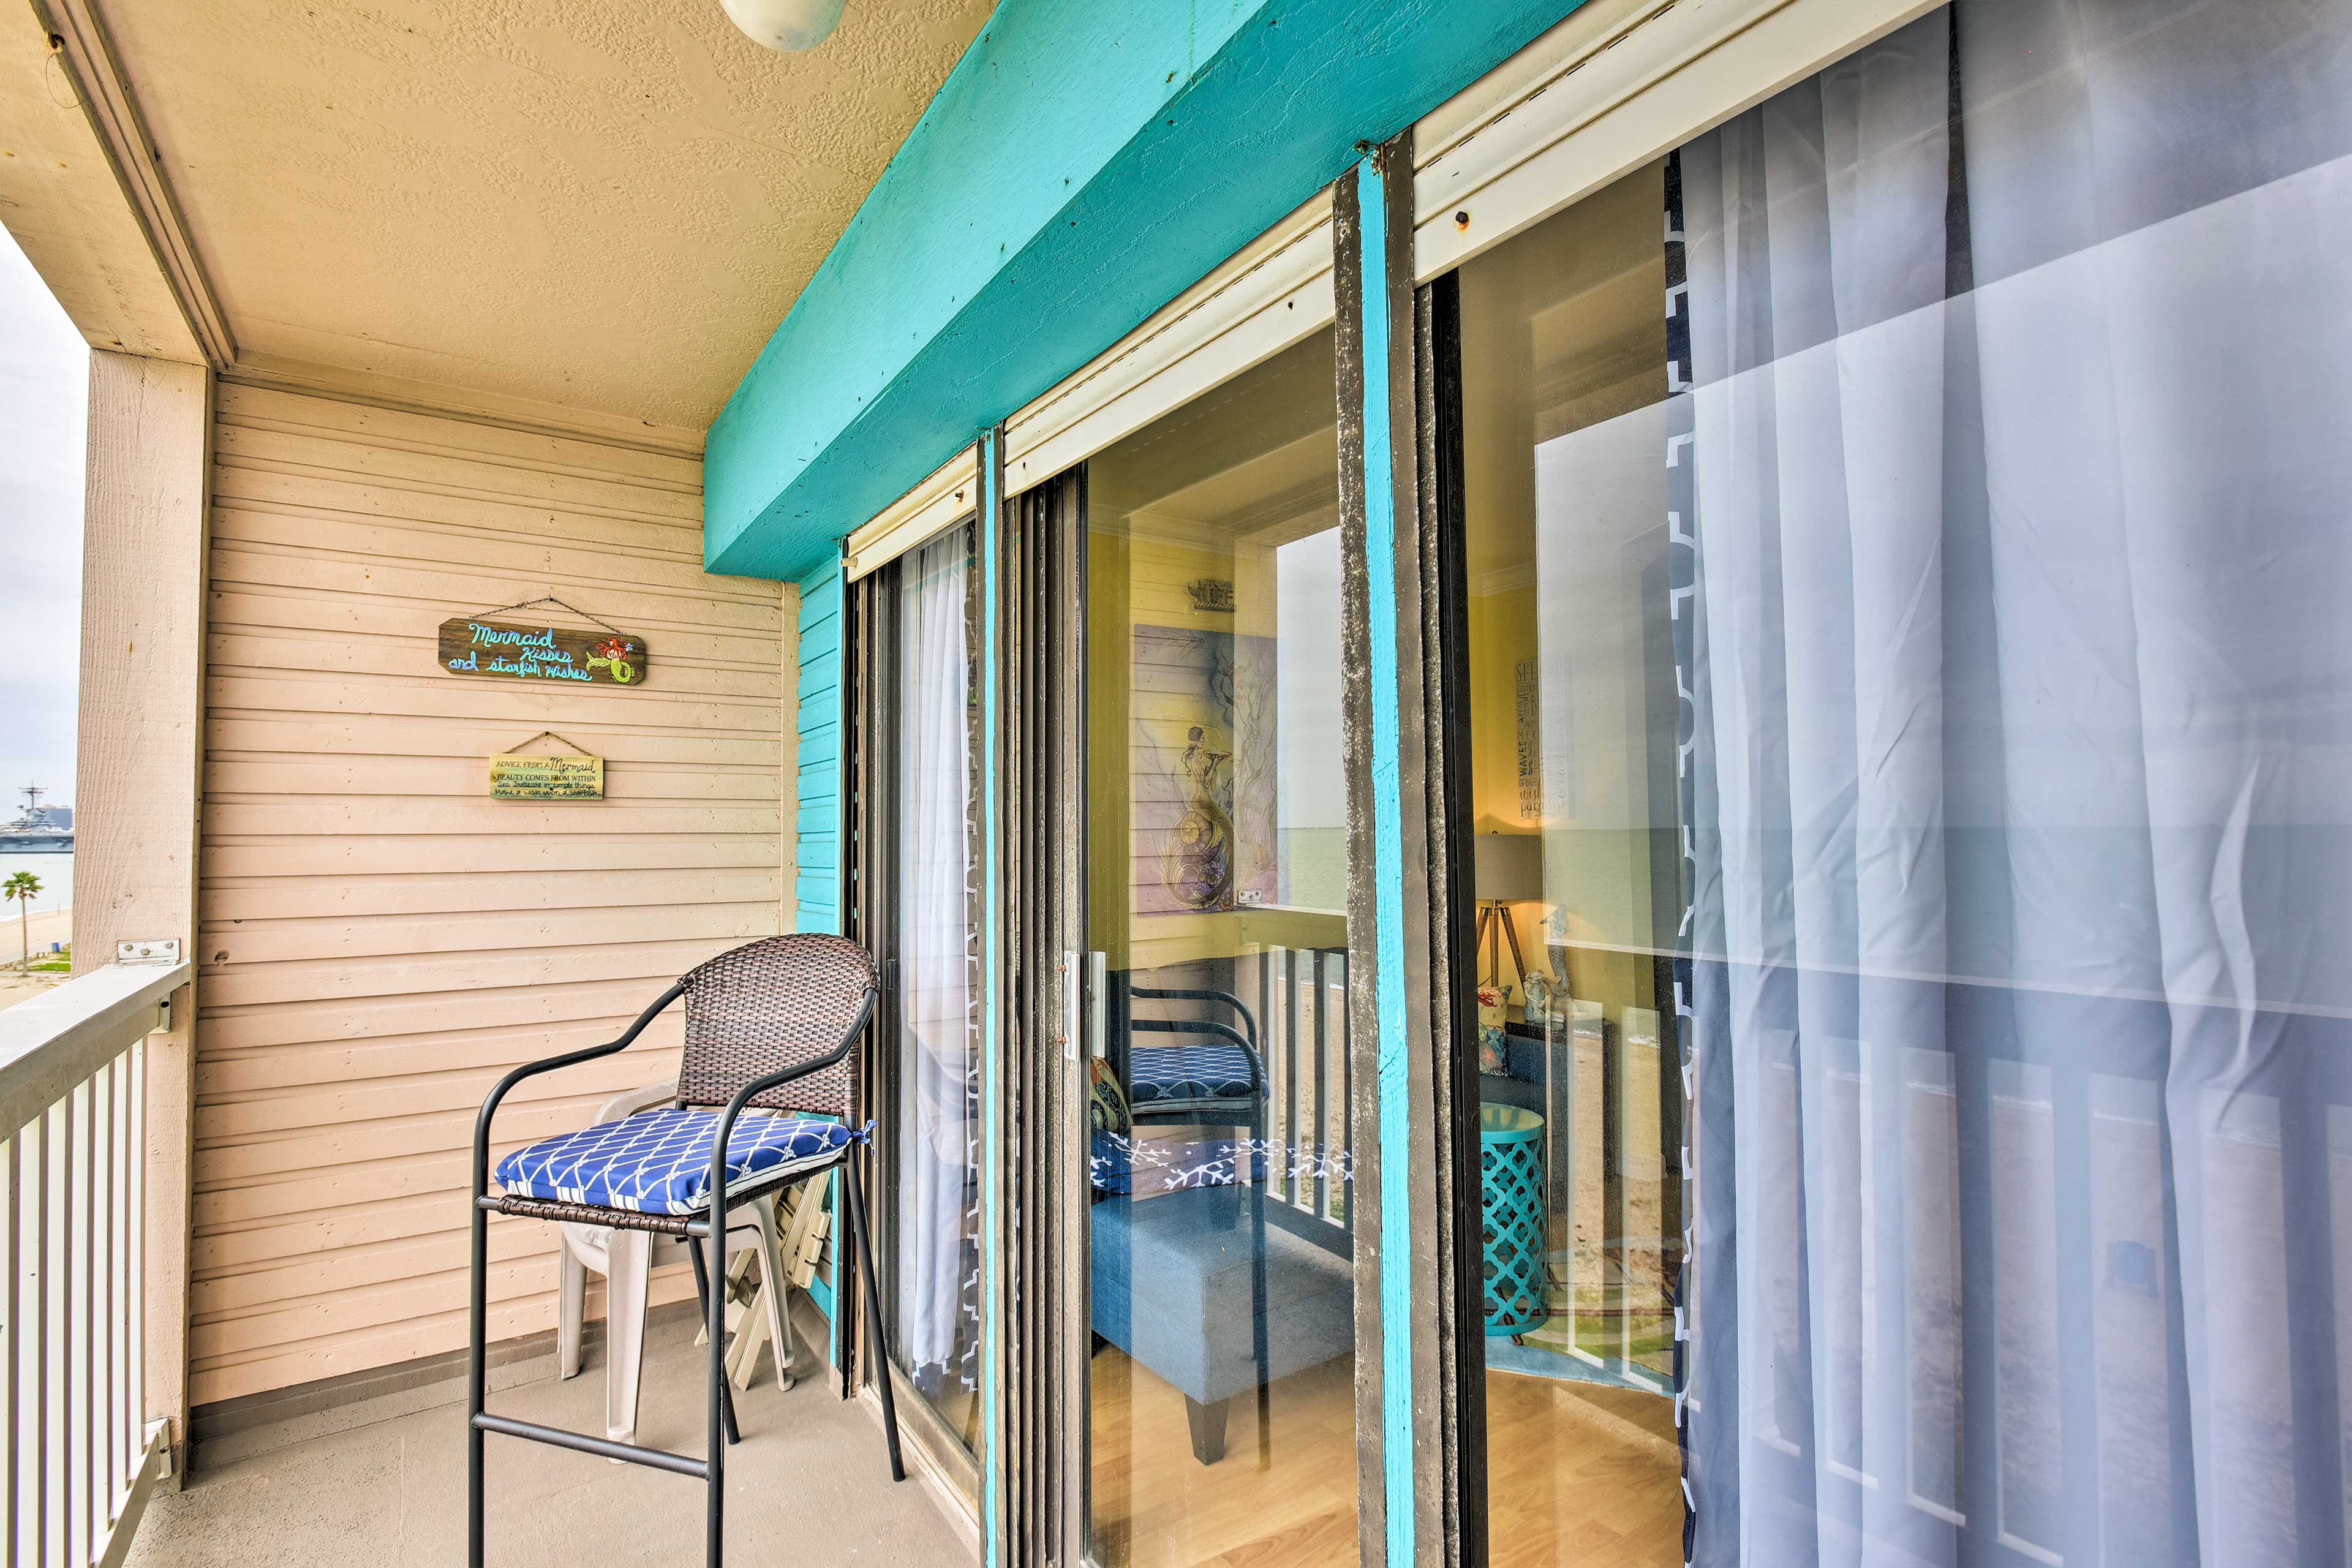 Open the sliding glass doors and walk out to the private balcony!